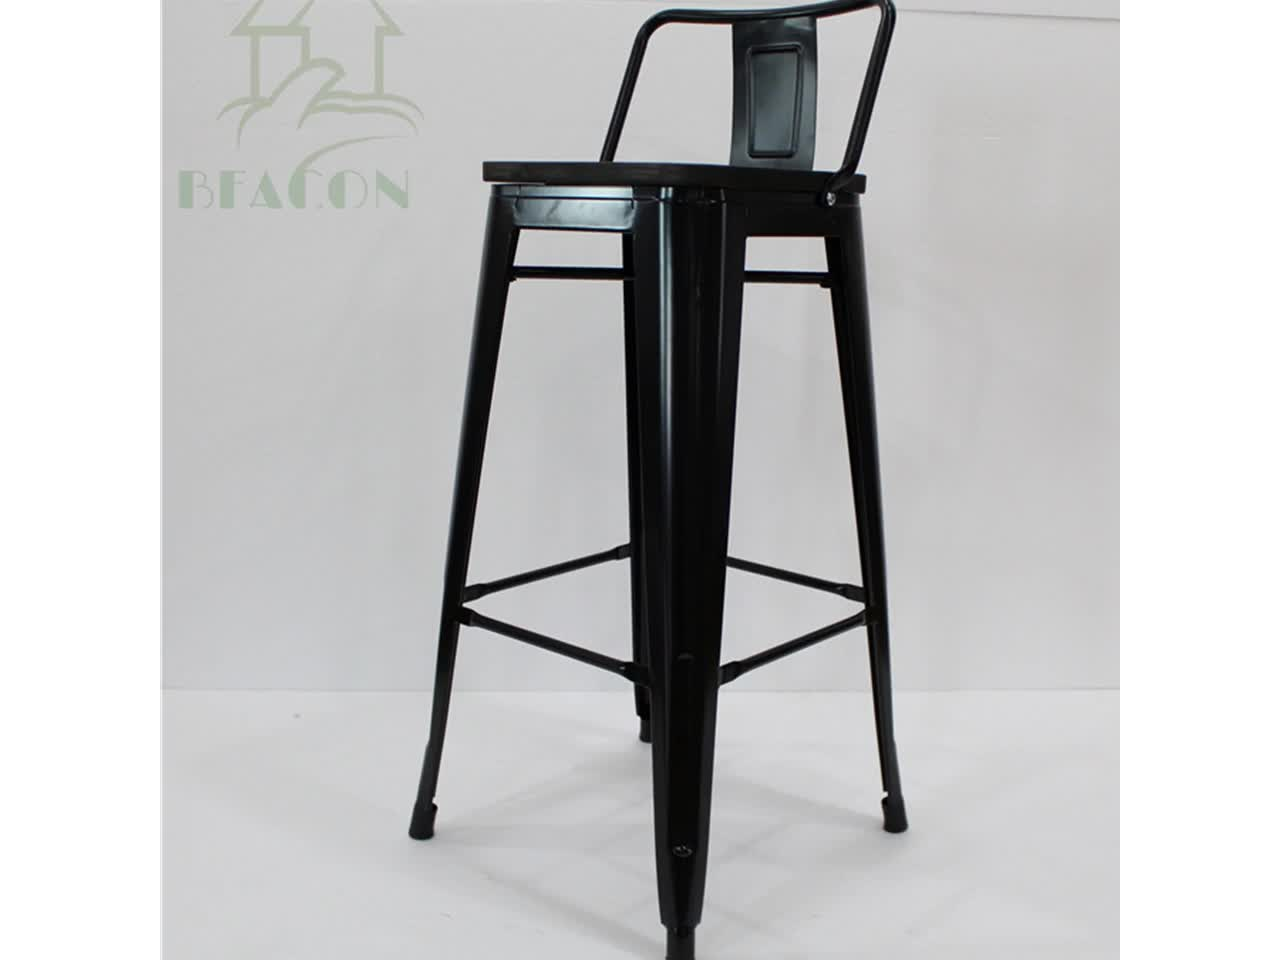 Groovy Industrial Wooden Seat Bar Stools With Back Buy Vintage Industrial Bar Stools Bar Stools With Back Industrial Bar Stools Product On Alibaba Com Gmtry Best Dining Table And Chair Ideas Images Gmtryco